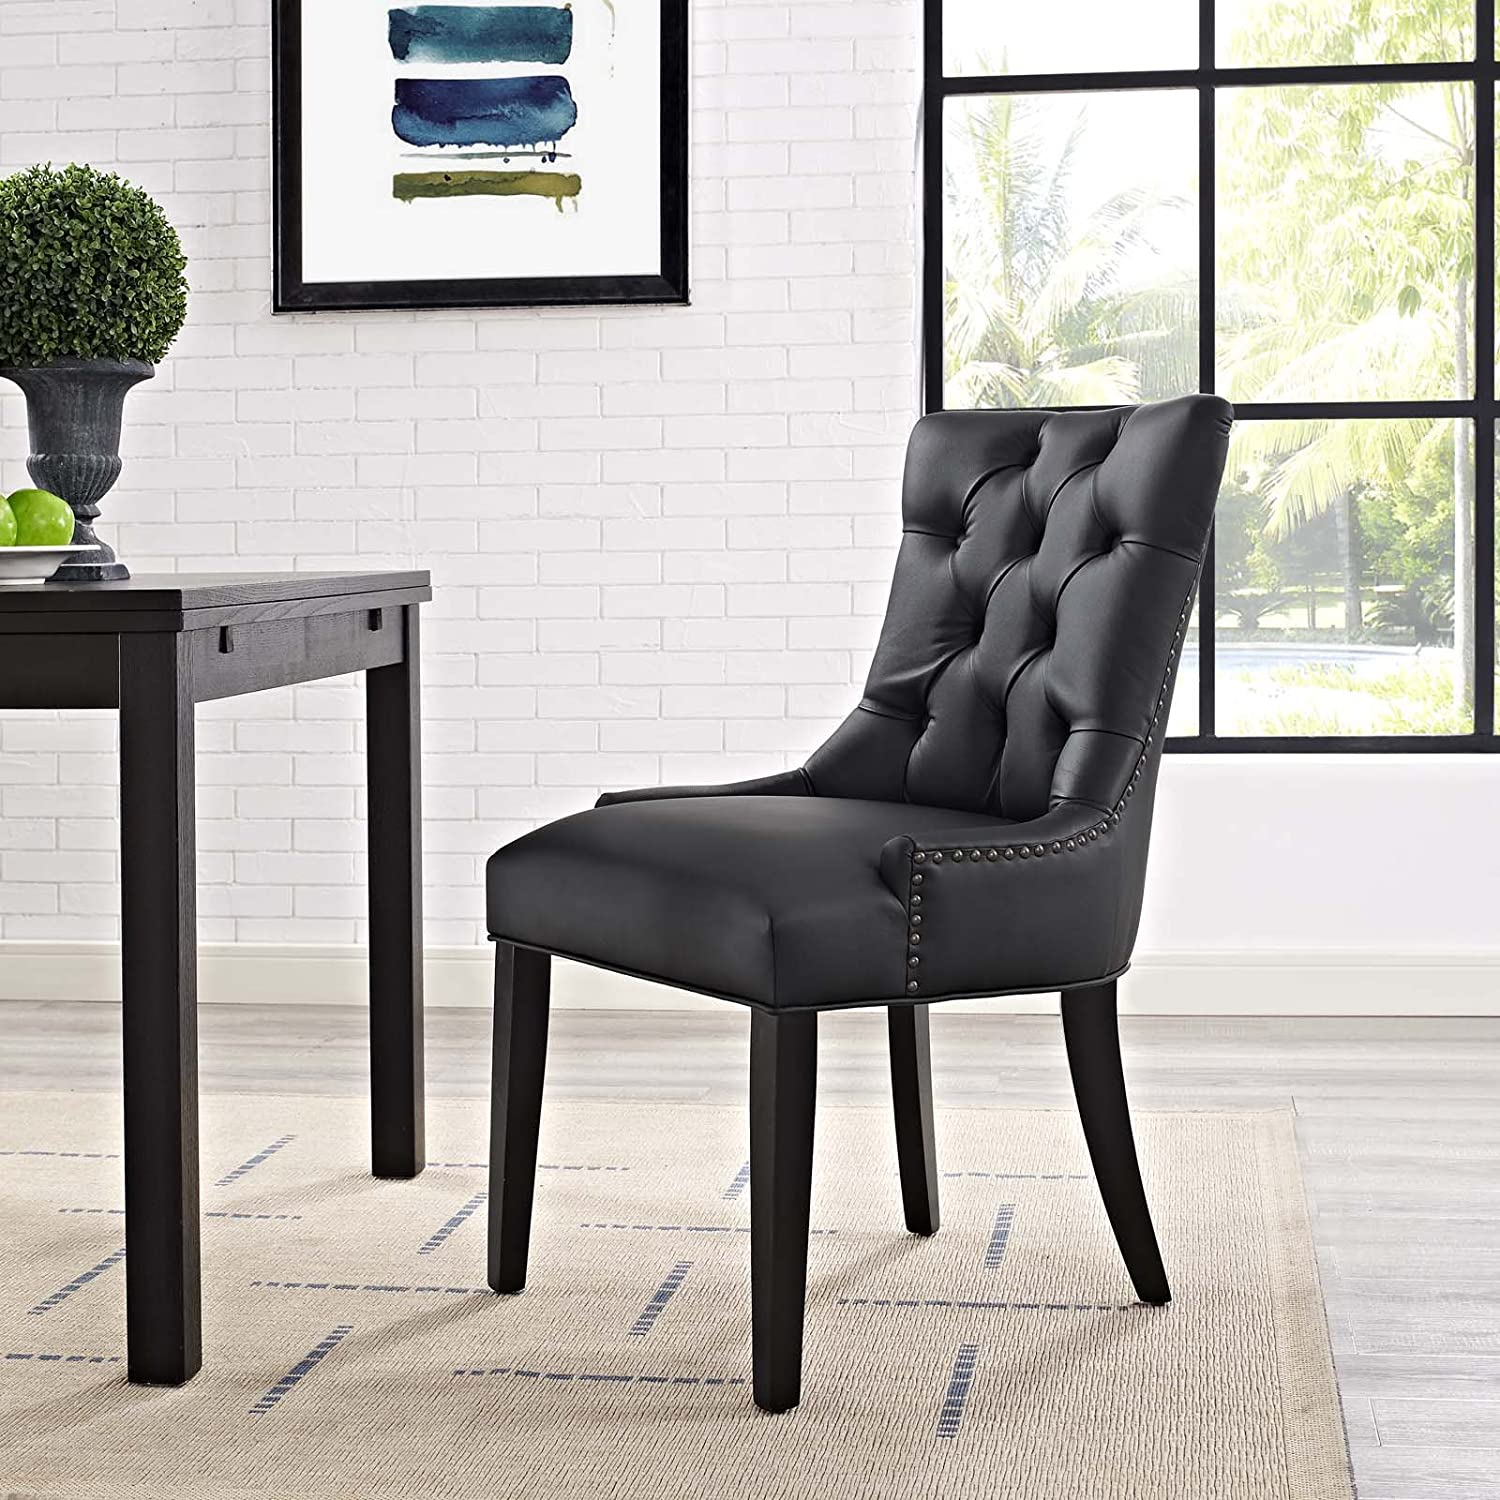 Modway MO-EEI-2222-BLK Regent Modern Tufted Faux Leather Upholstered with Nailhead Trim, Dining Chair, Black